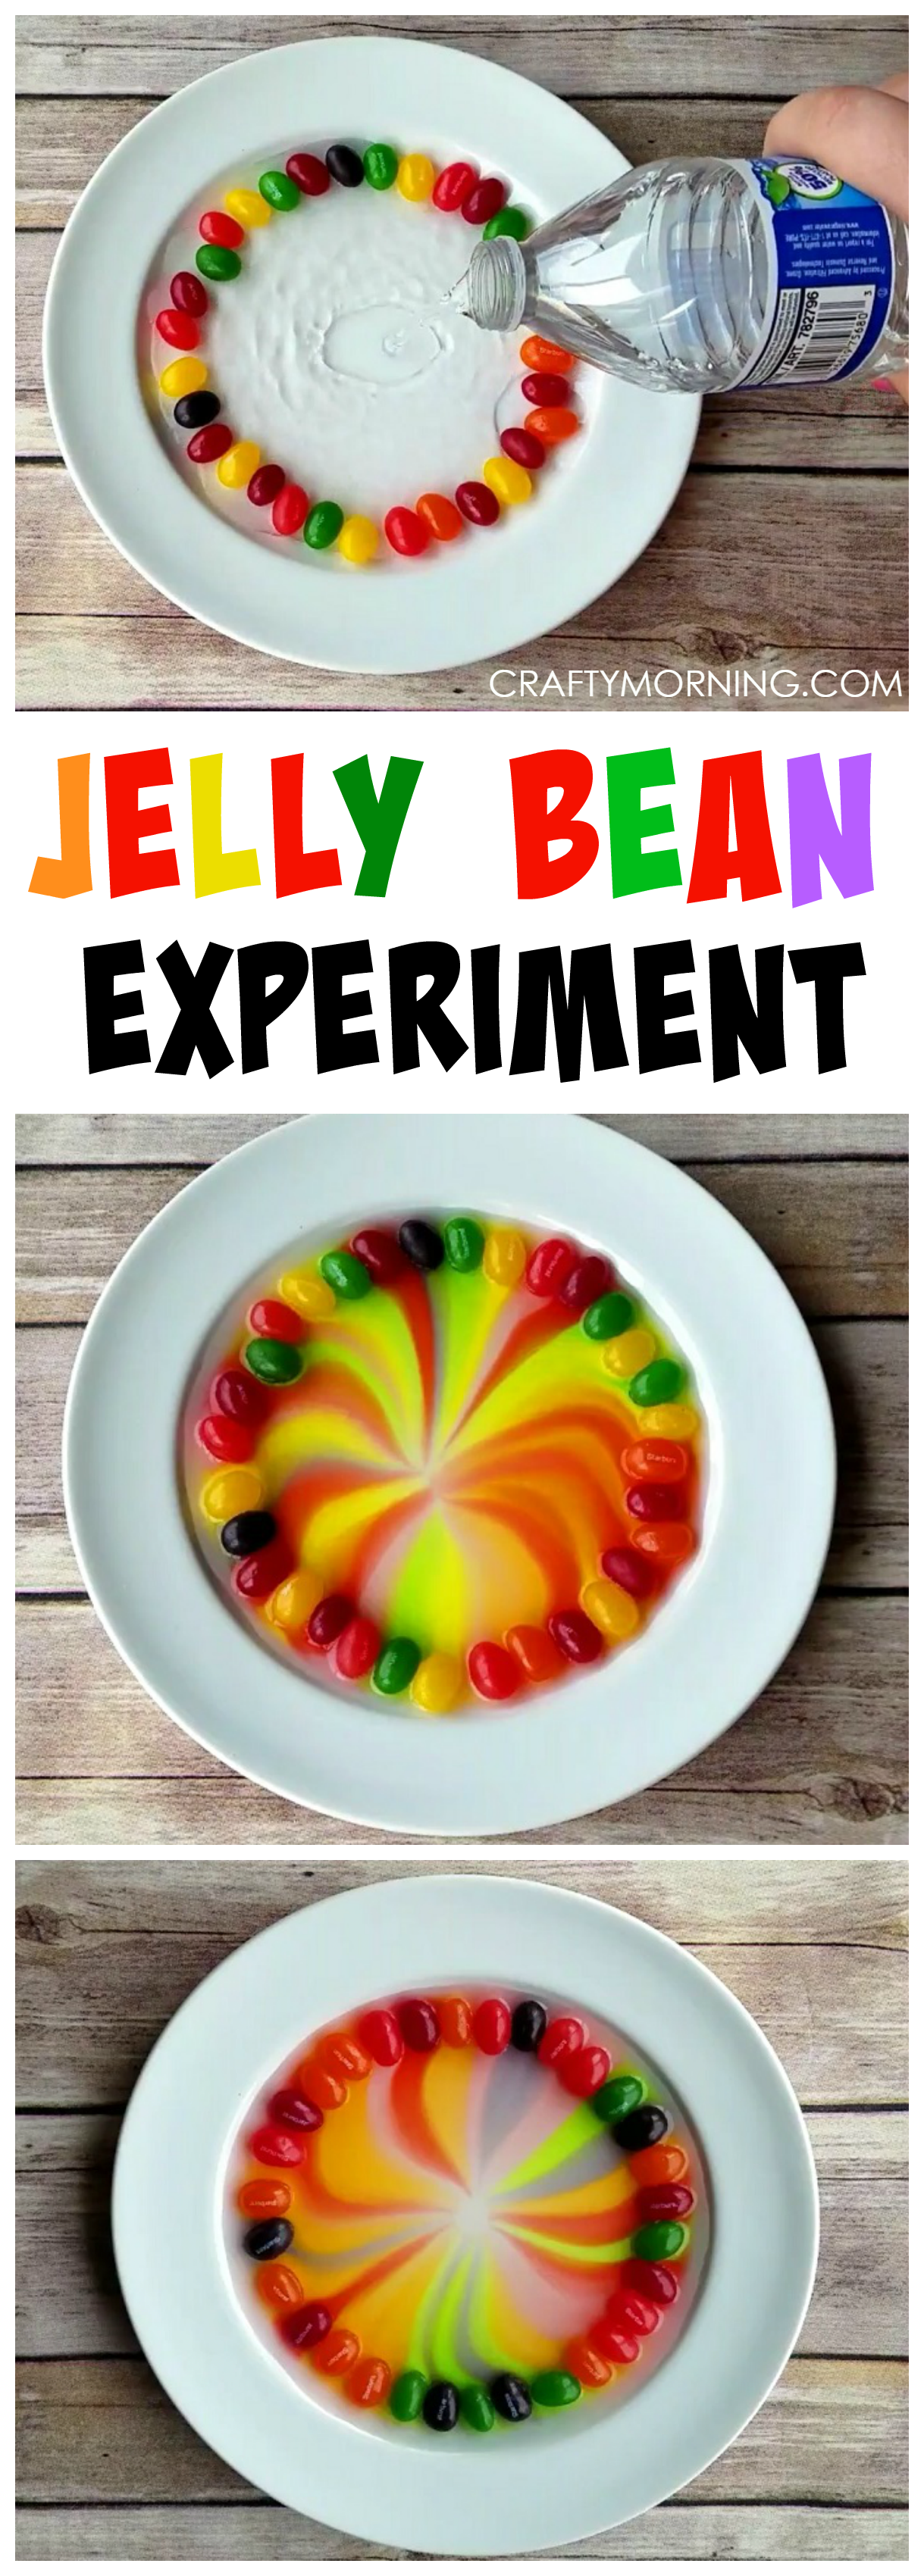 This Jelly Bean Science Experiment Is So Fun For The Kids Perfect For Around Easter Time